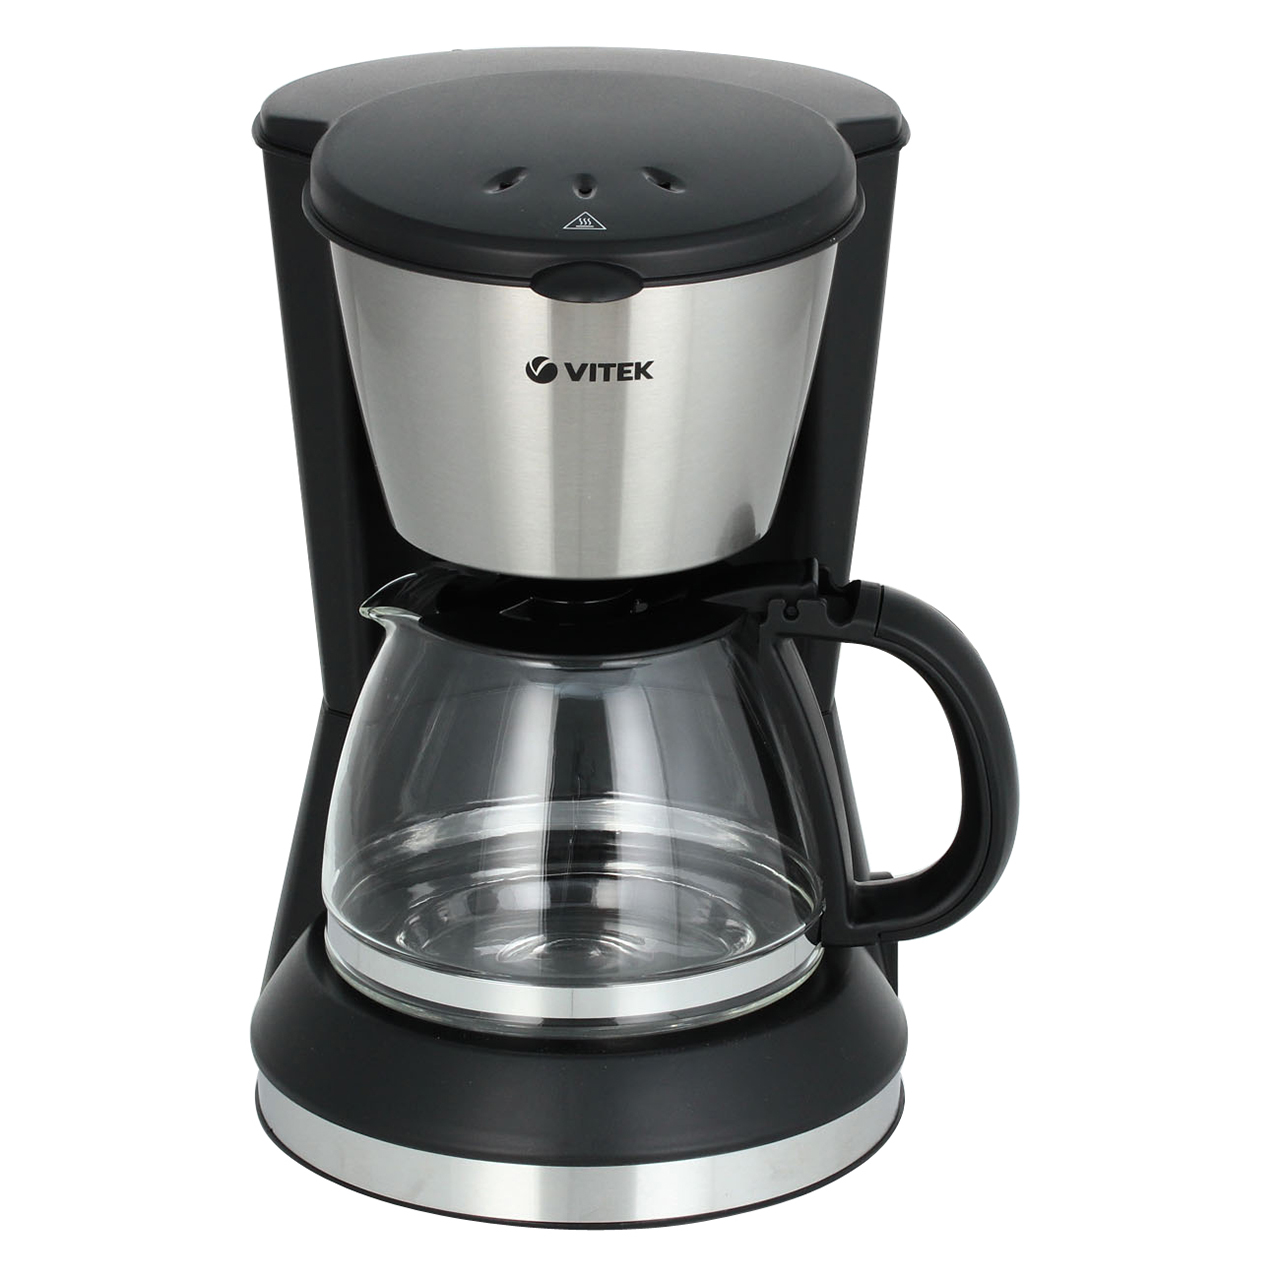 Coffee maker Vitek VT-1506 BK coffee maker vitek vt 1502 bk coffee machine coffee makers maker espresso cappuccino electric horn